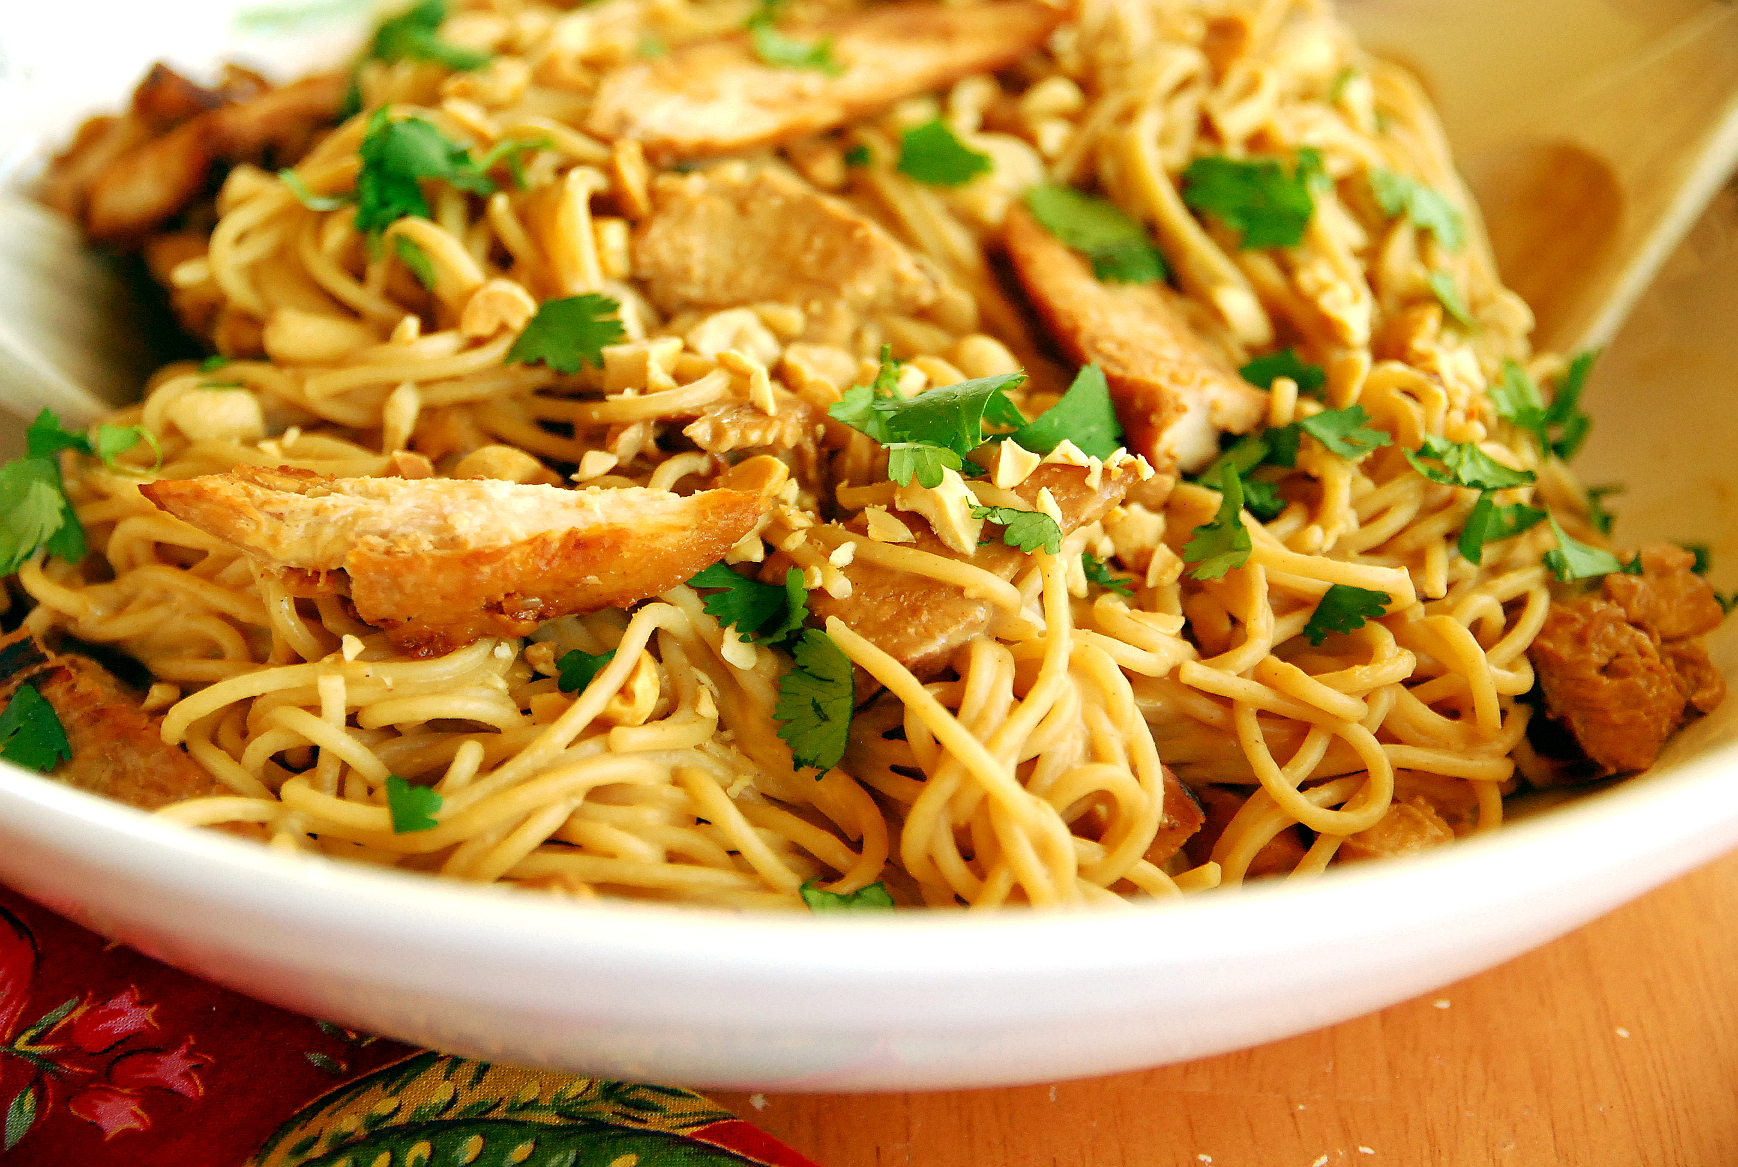 images of noodles - photo #46